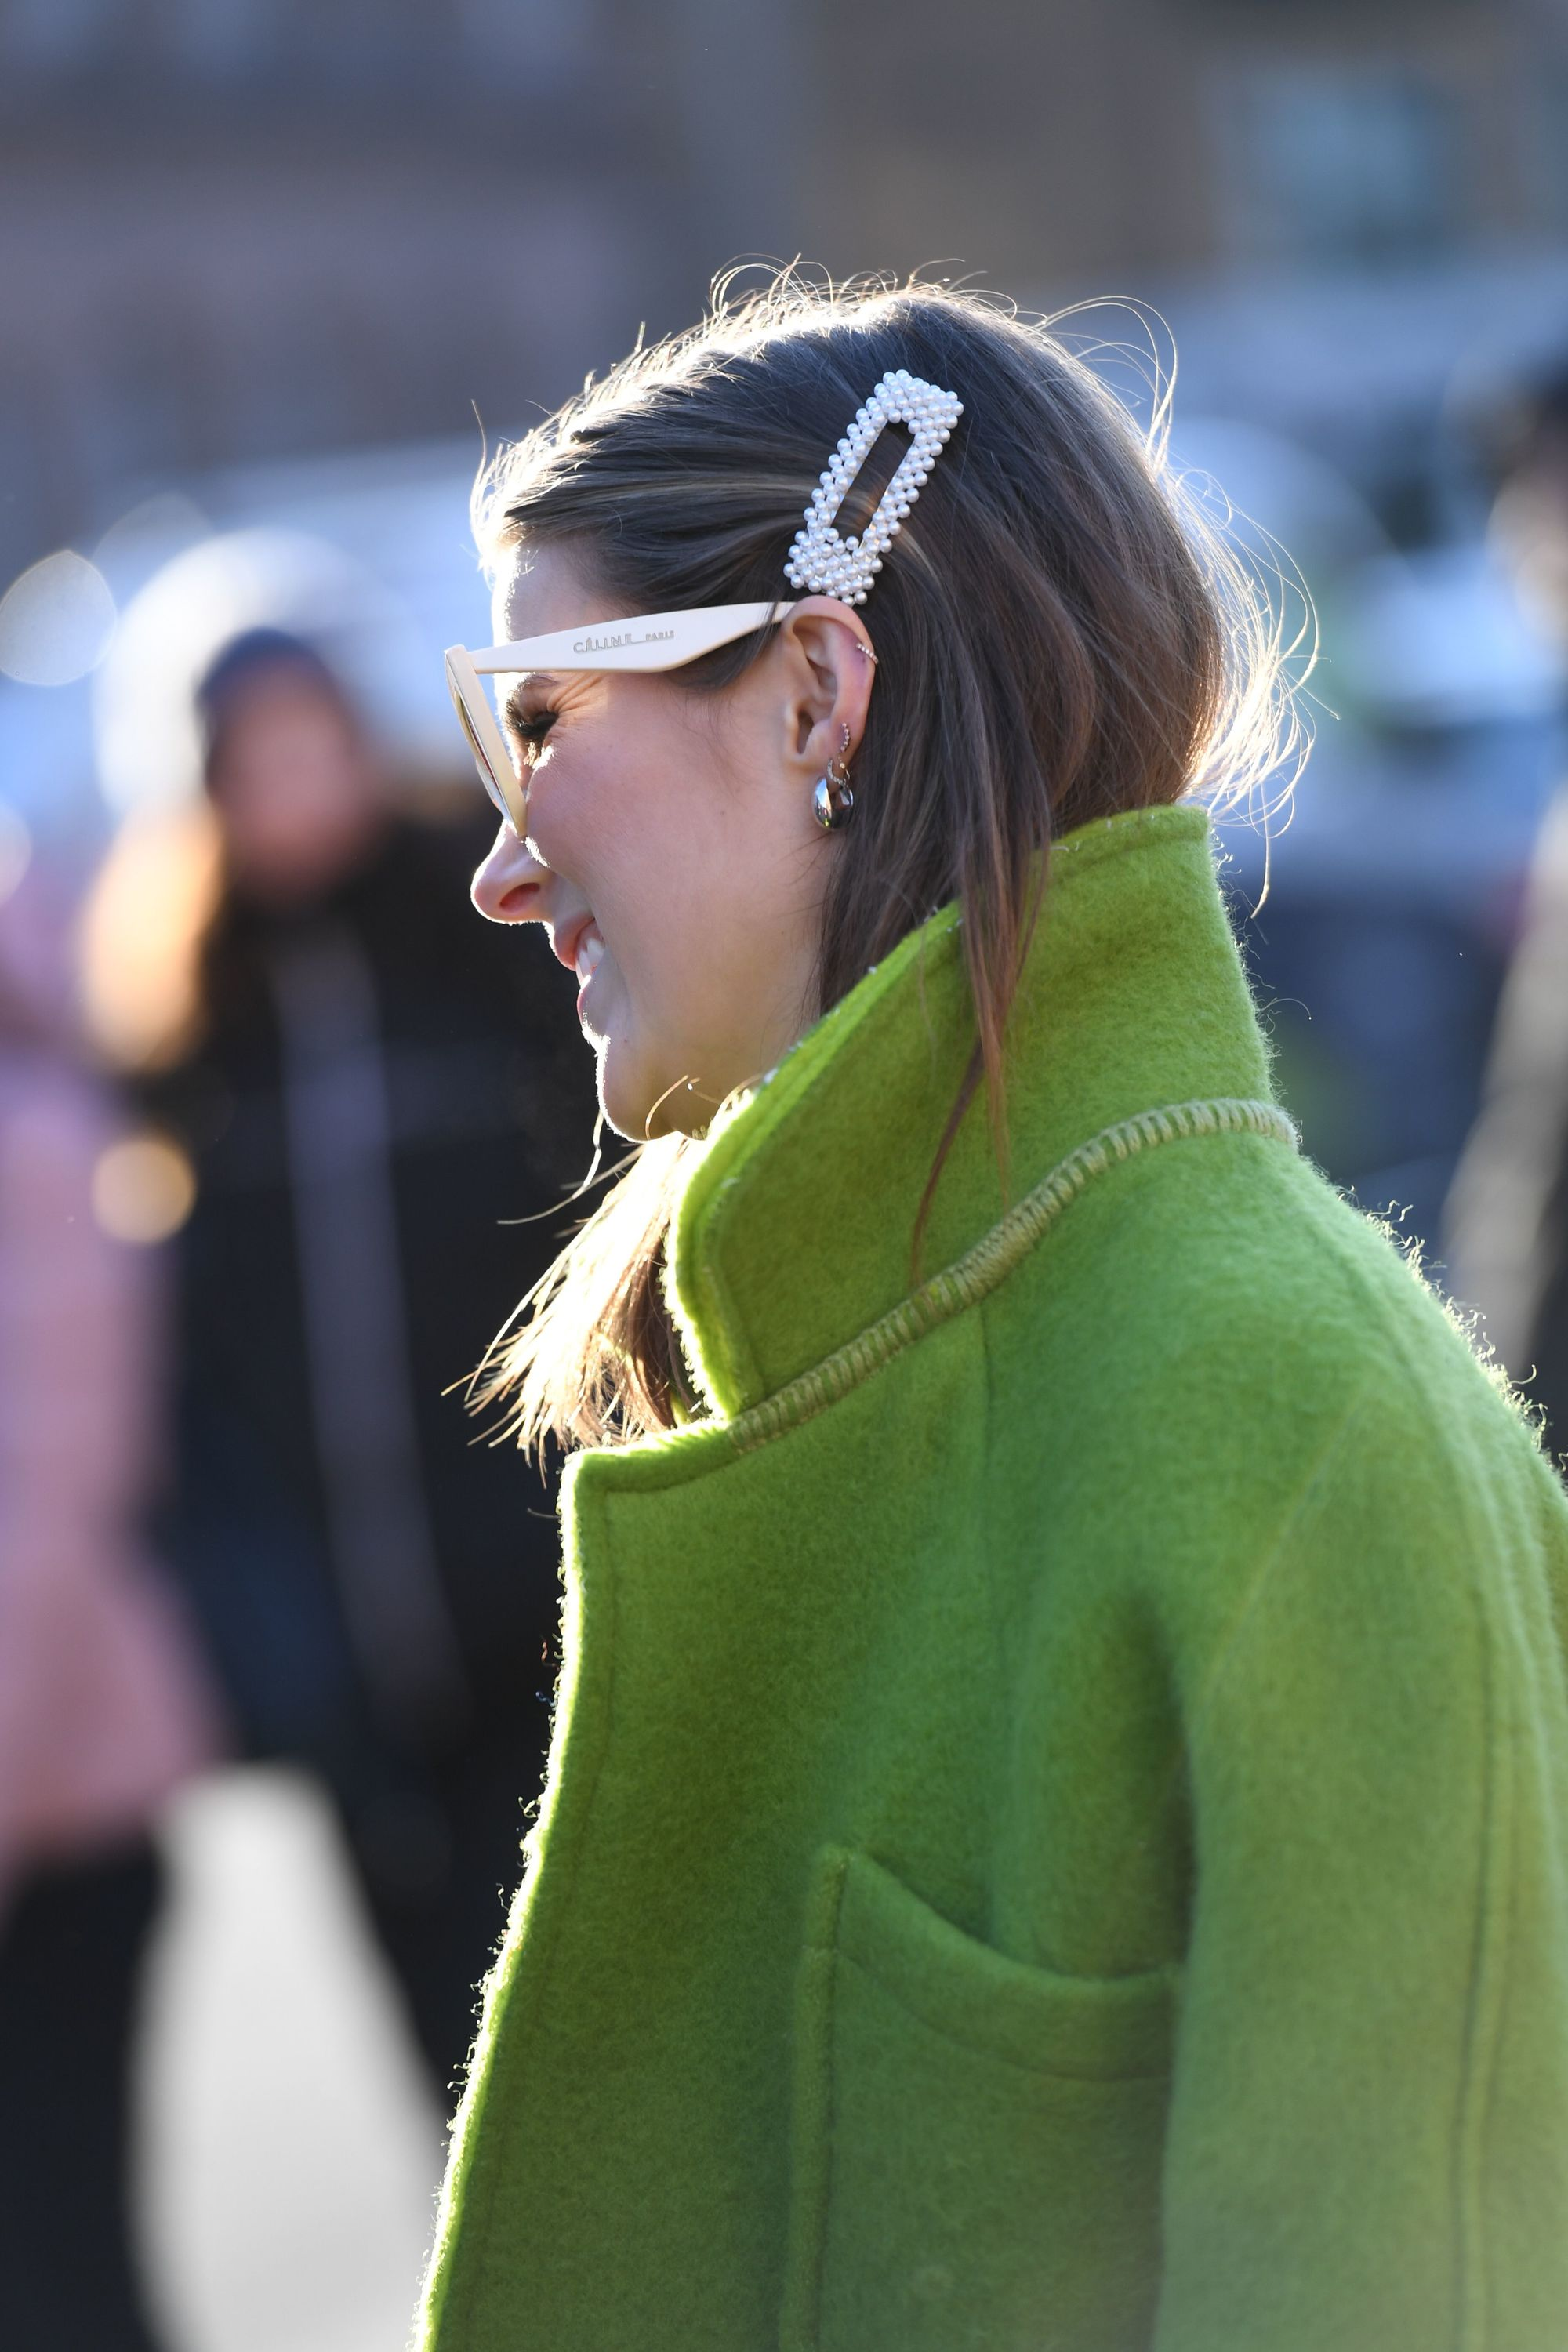 2019 Hair accessories: Street style shot of woman with her hair tucked into a green jacket. wearing a pearl hair clip with sunglasses at Copenhagen fashion week